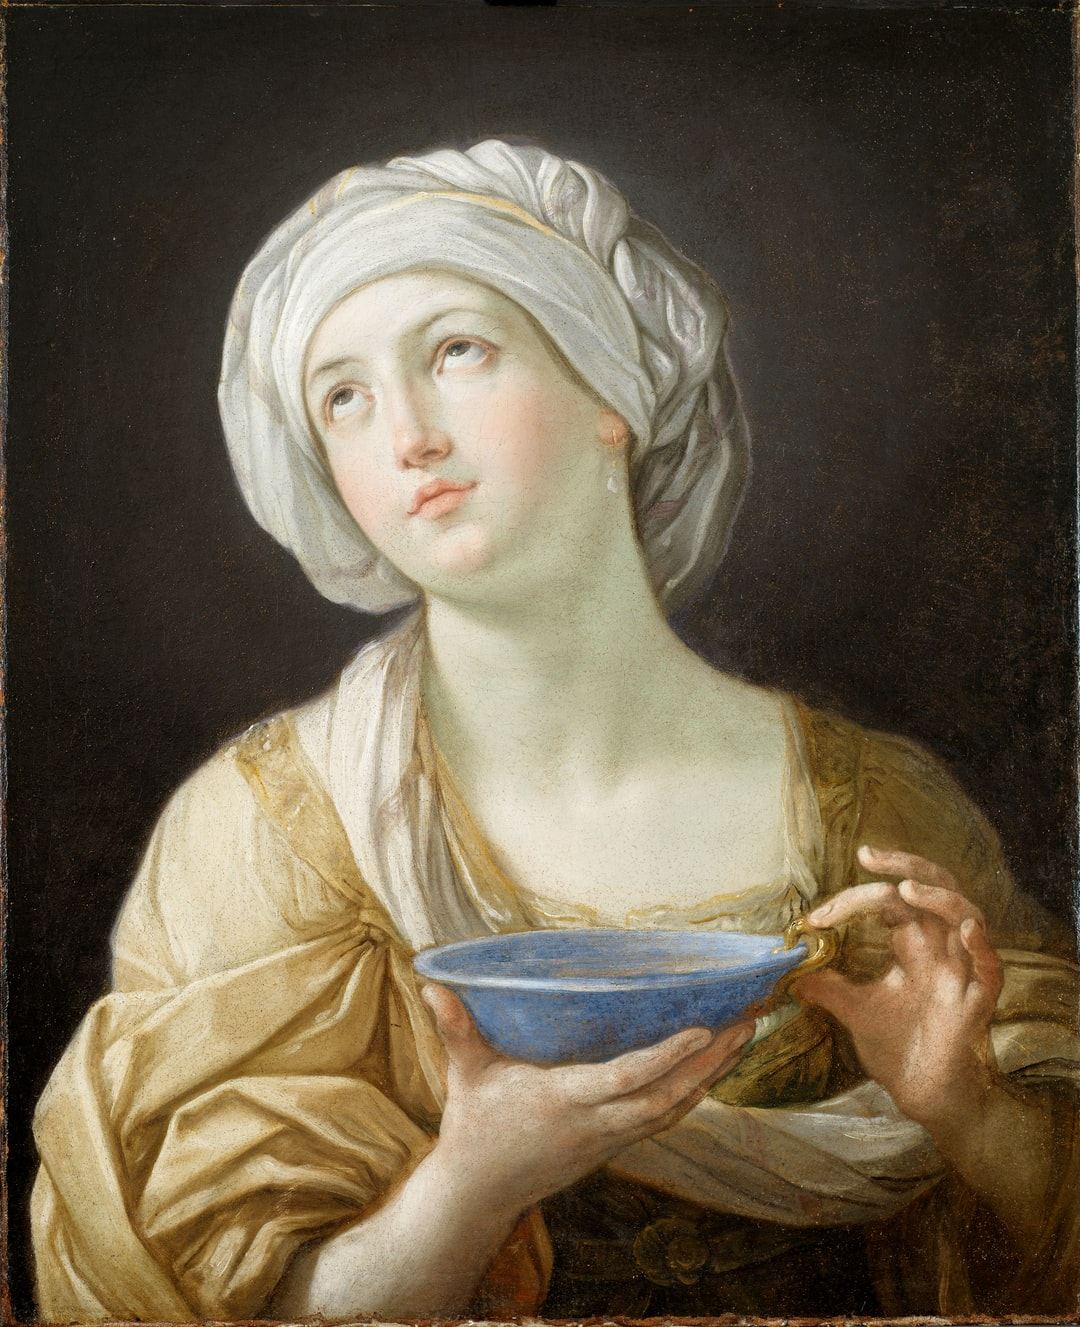 Portrait of a Woman, 1638-39 by Guido Reni. The subject may represent Artemisia II of Caria (d.350 BC) wife of Mausolus, the governor of Caria in Asia Minor. After the death of her husband, she mixed his ashes in liquid which she drank, making herself a living tomb. The story was used as a symbol of a widow's devotion to her husband's memory.